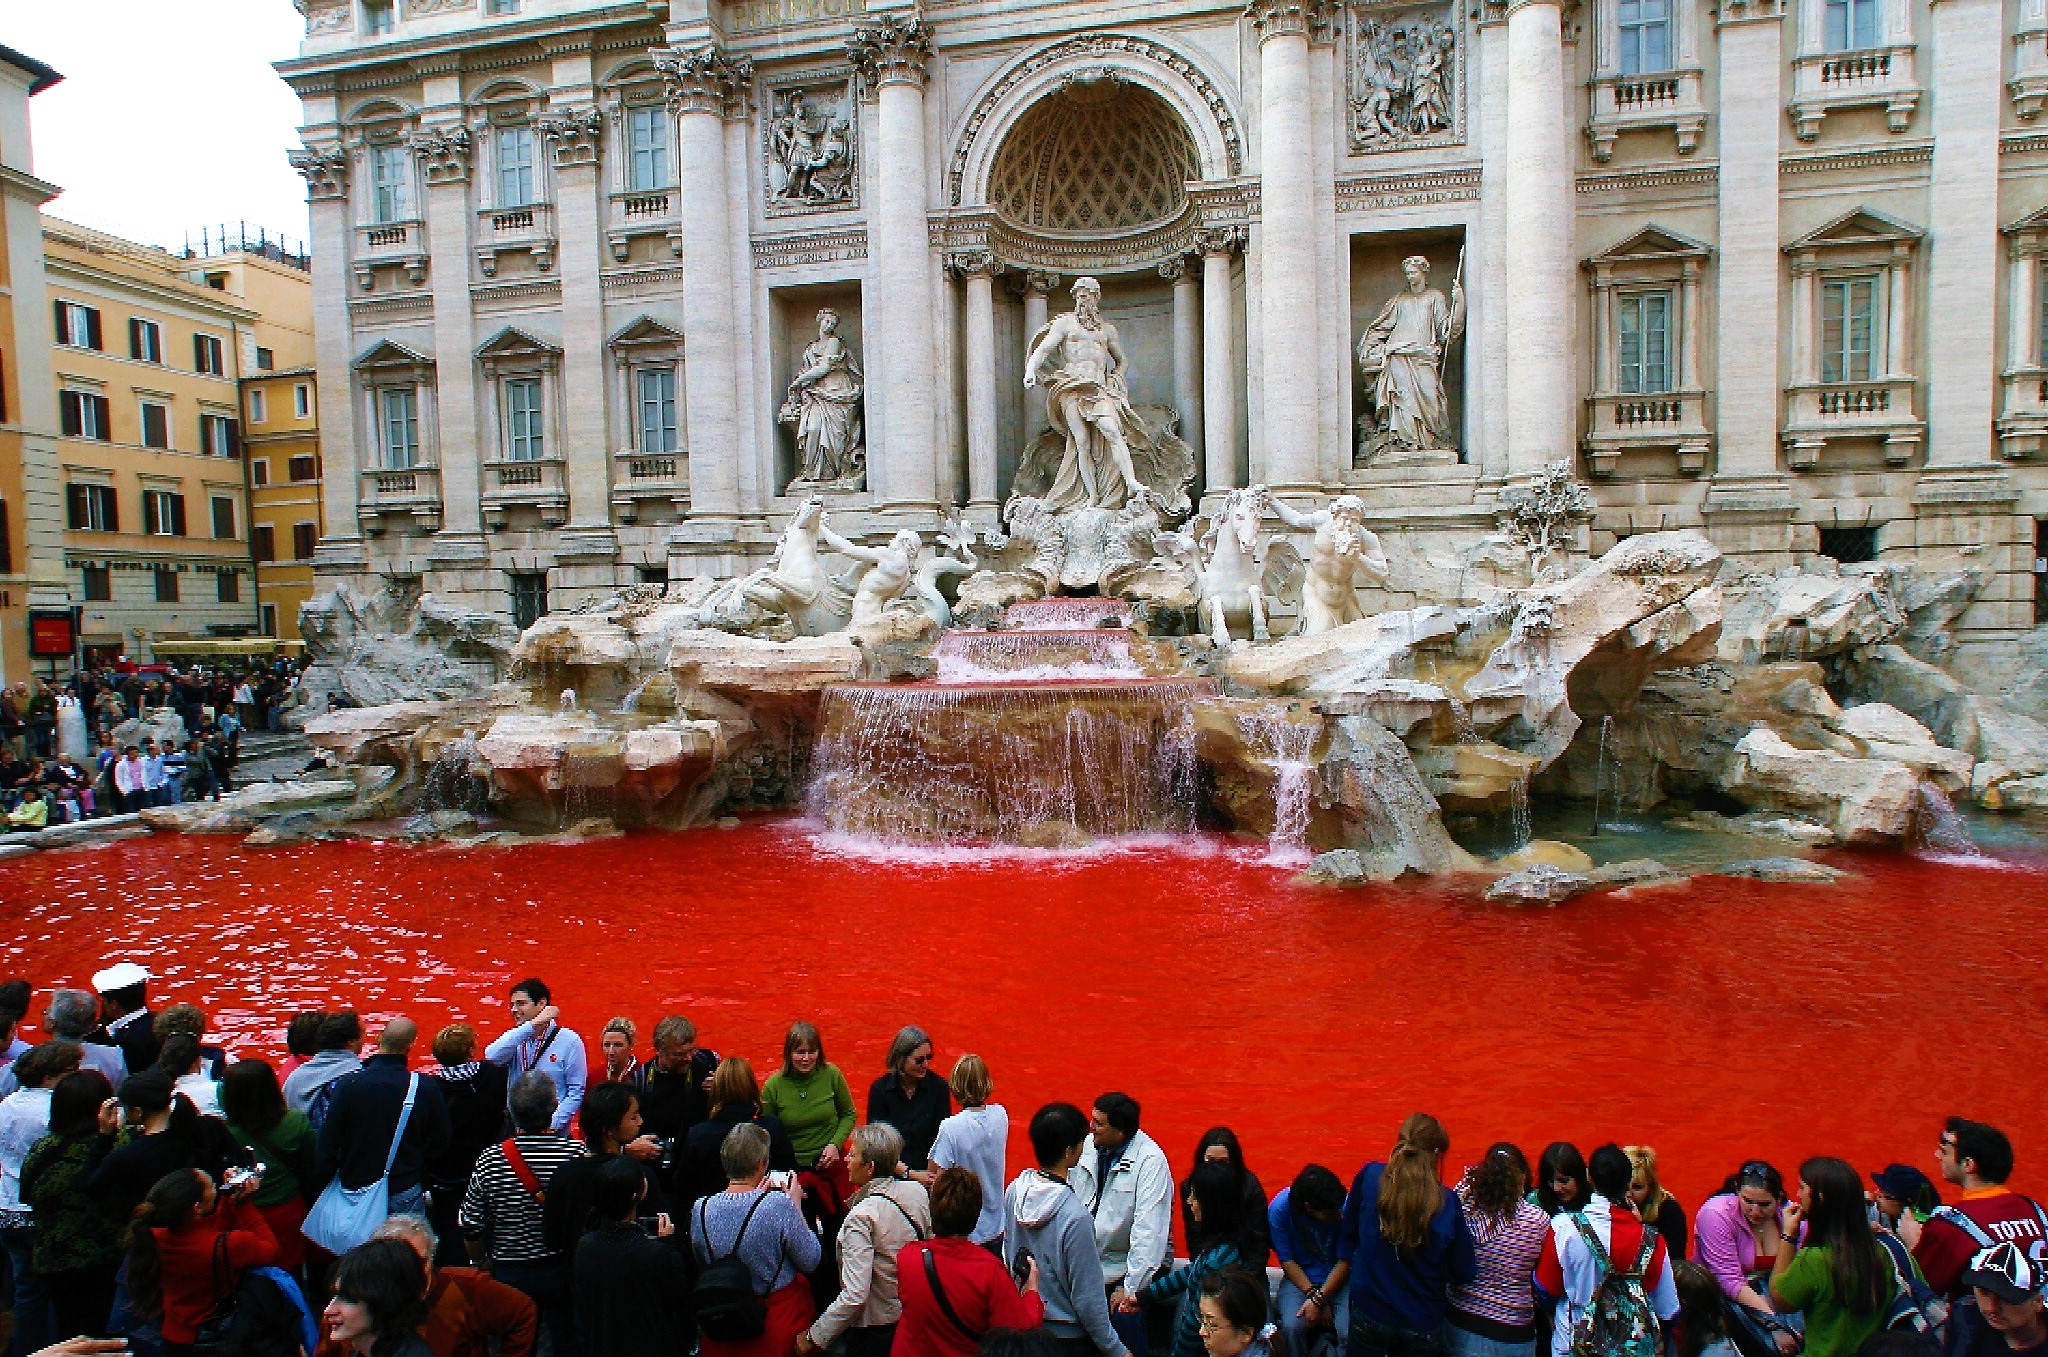 Trevi turned red